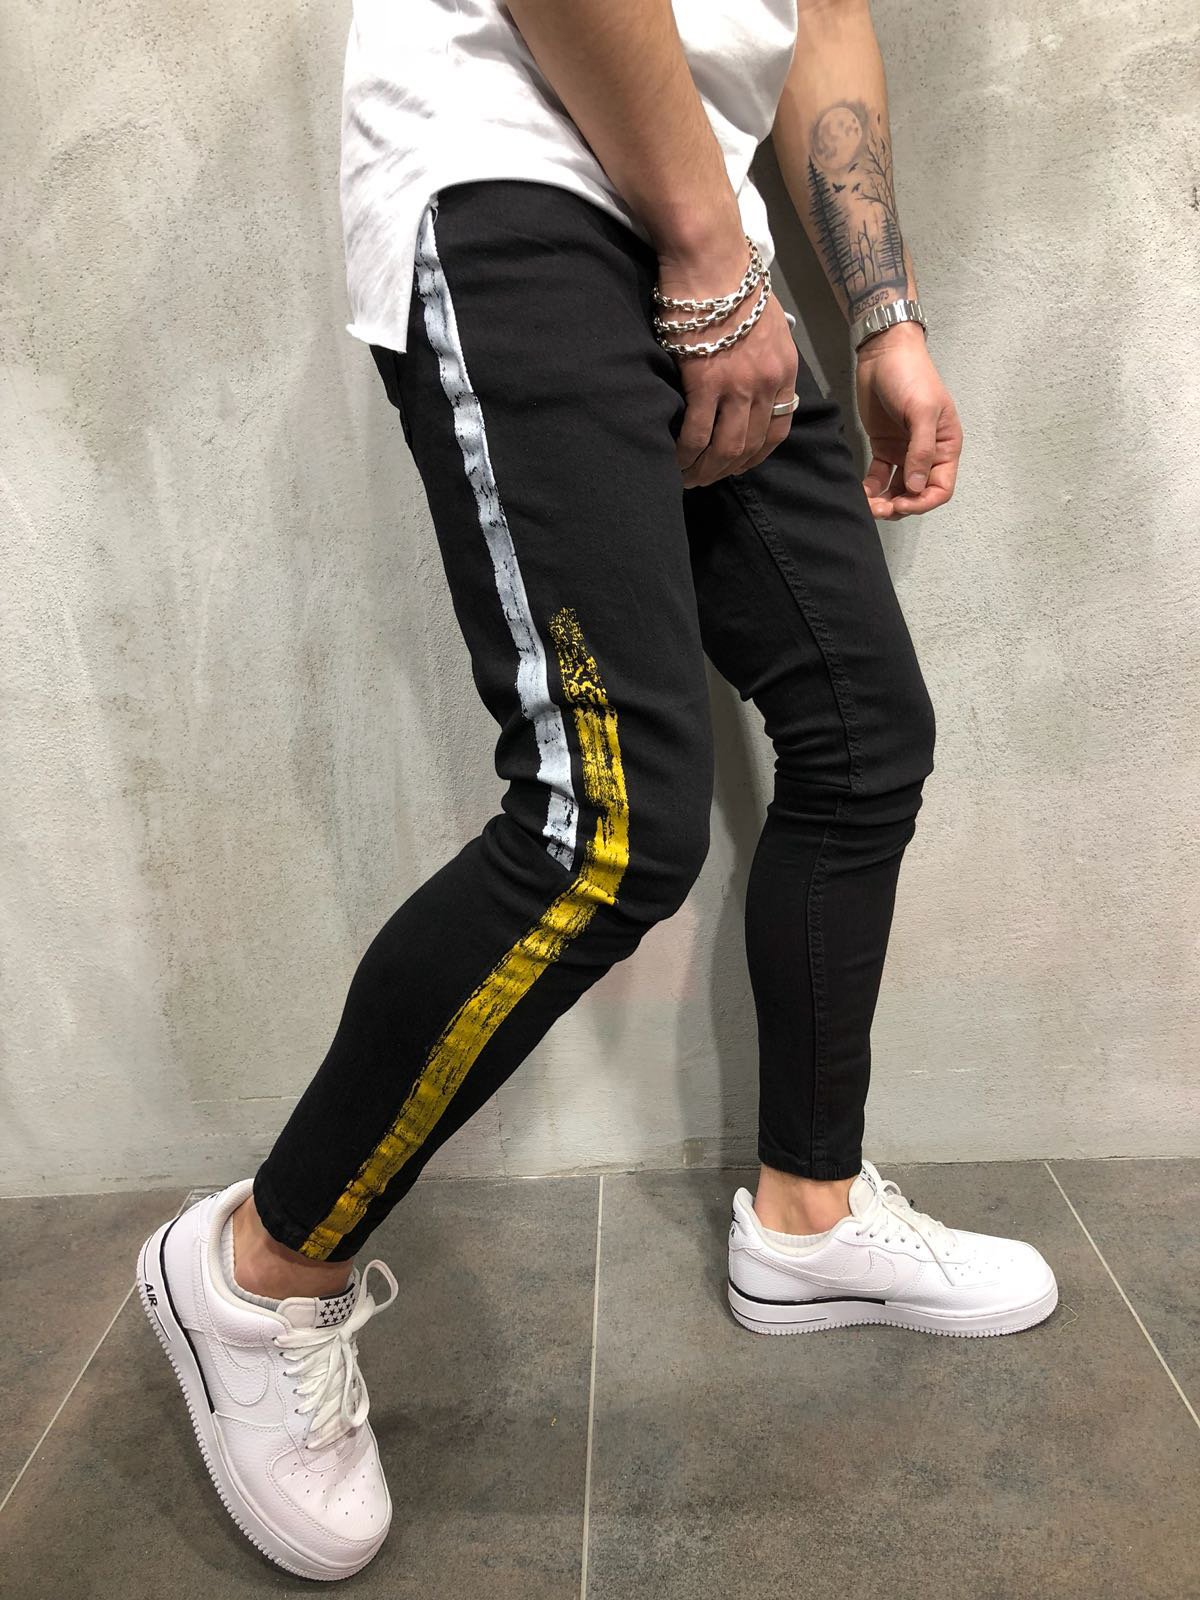 2018 Jeans MEN'S Black Dump Paint Edges Micro Elastic Black And White With Pattern Trousers New Style Fashion Men's Trousers